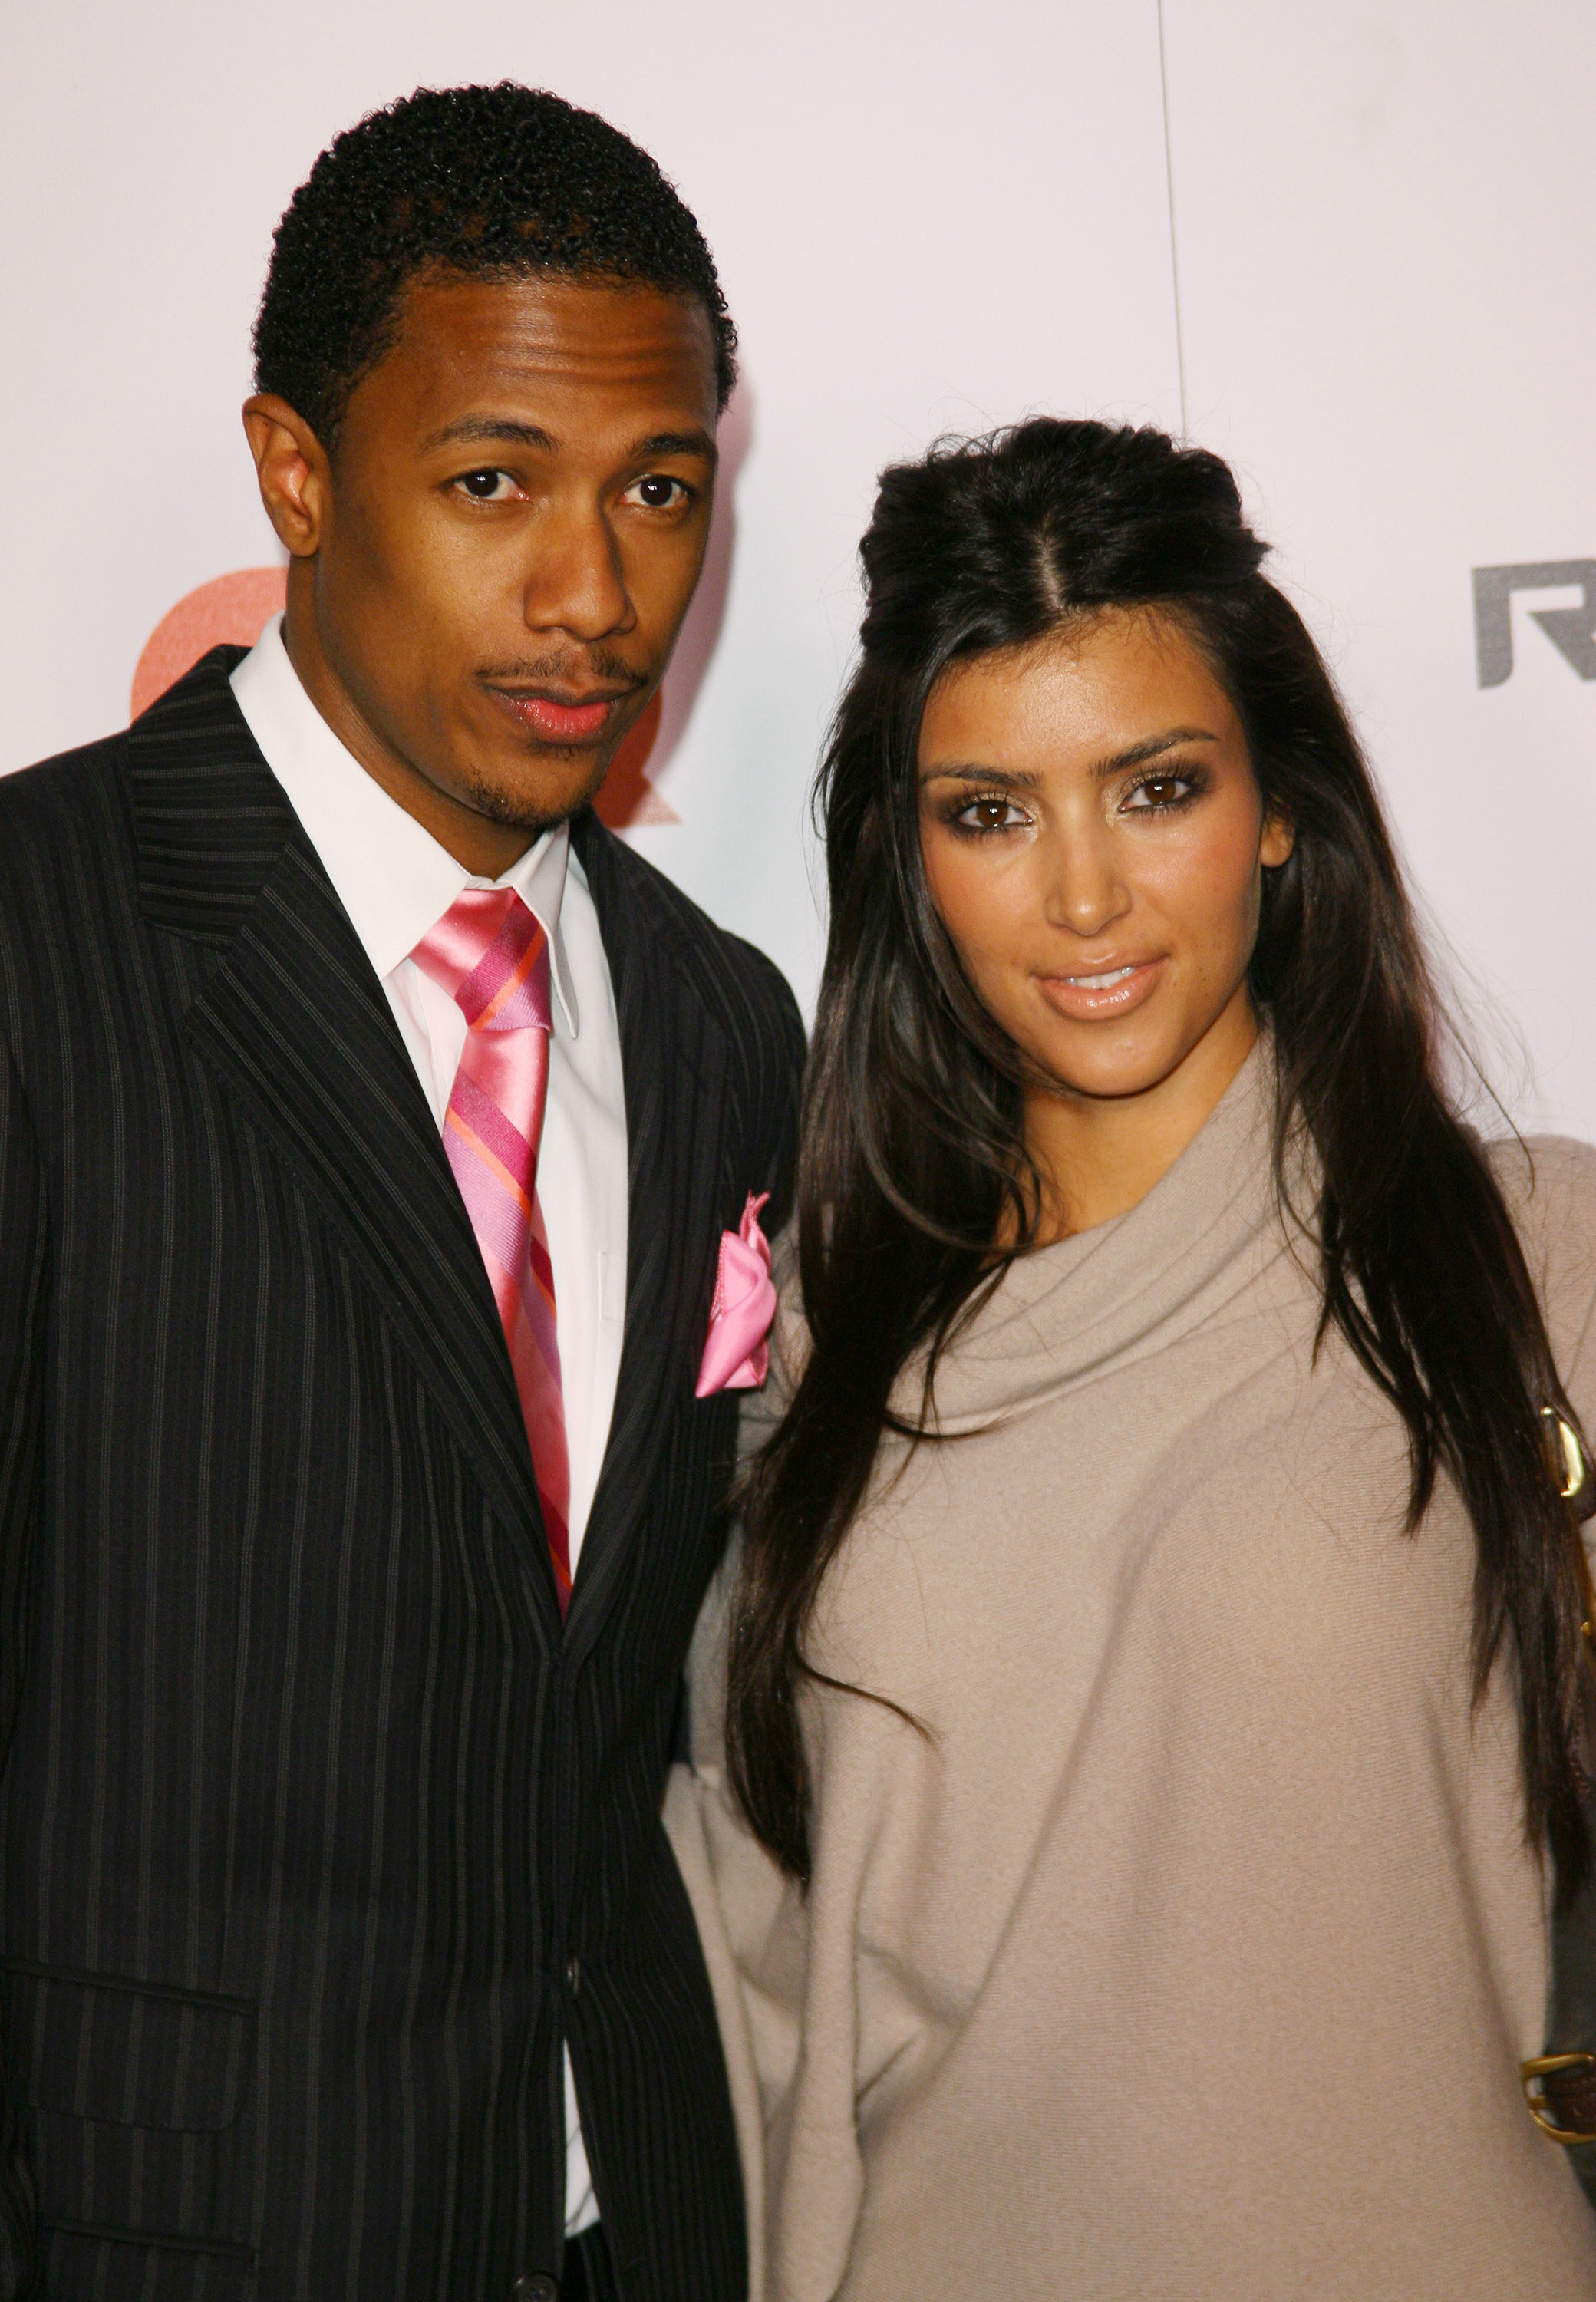 """Nick Cannon and Kim Kardashian during Jay Z Celebrates """"Kingdom Come"""" Album Release Party  in Los Angeles on Nov. 21, 2006."""